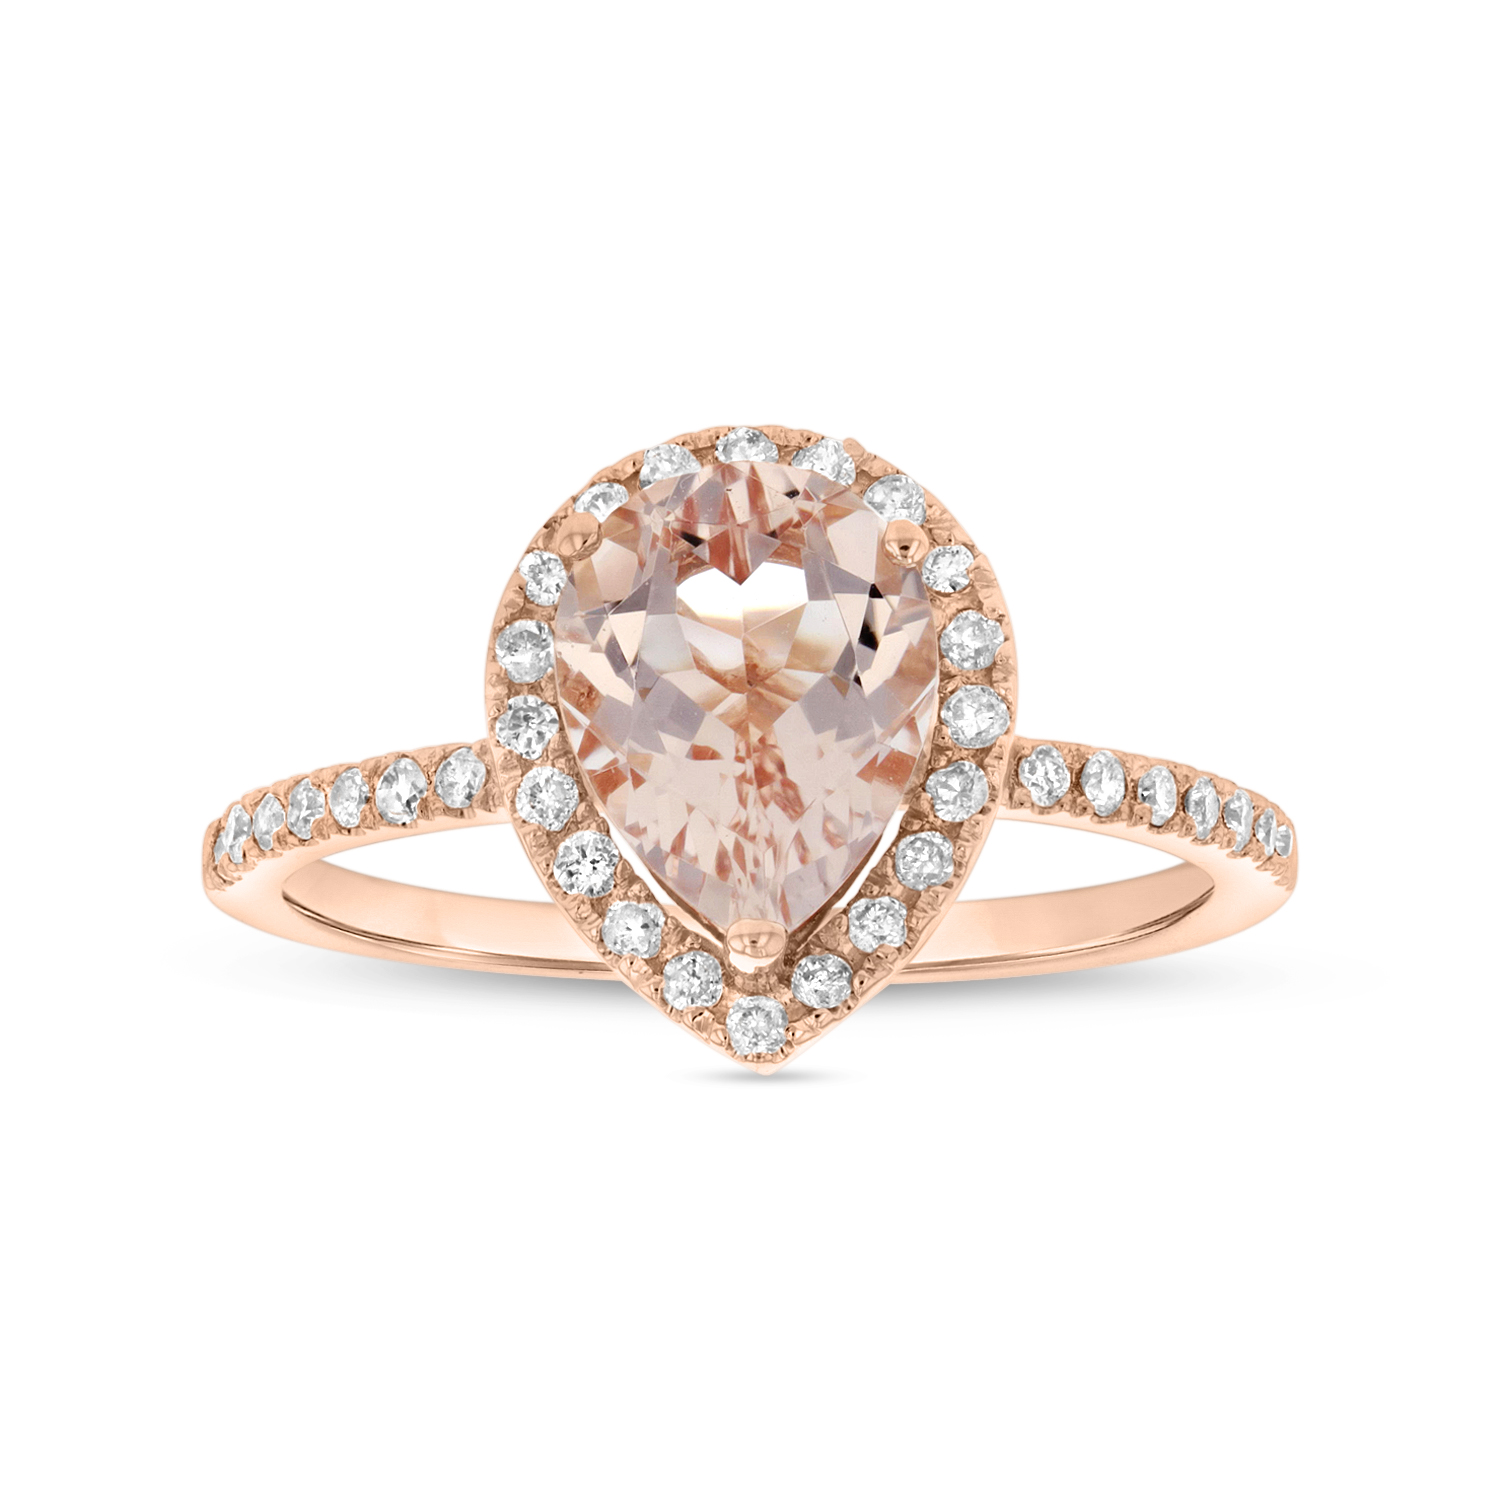 View 8X6 mm Pear Shape Morganite and Diamond Ring in 14k Rose Gold